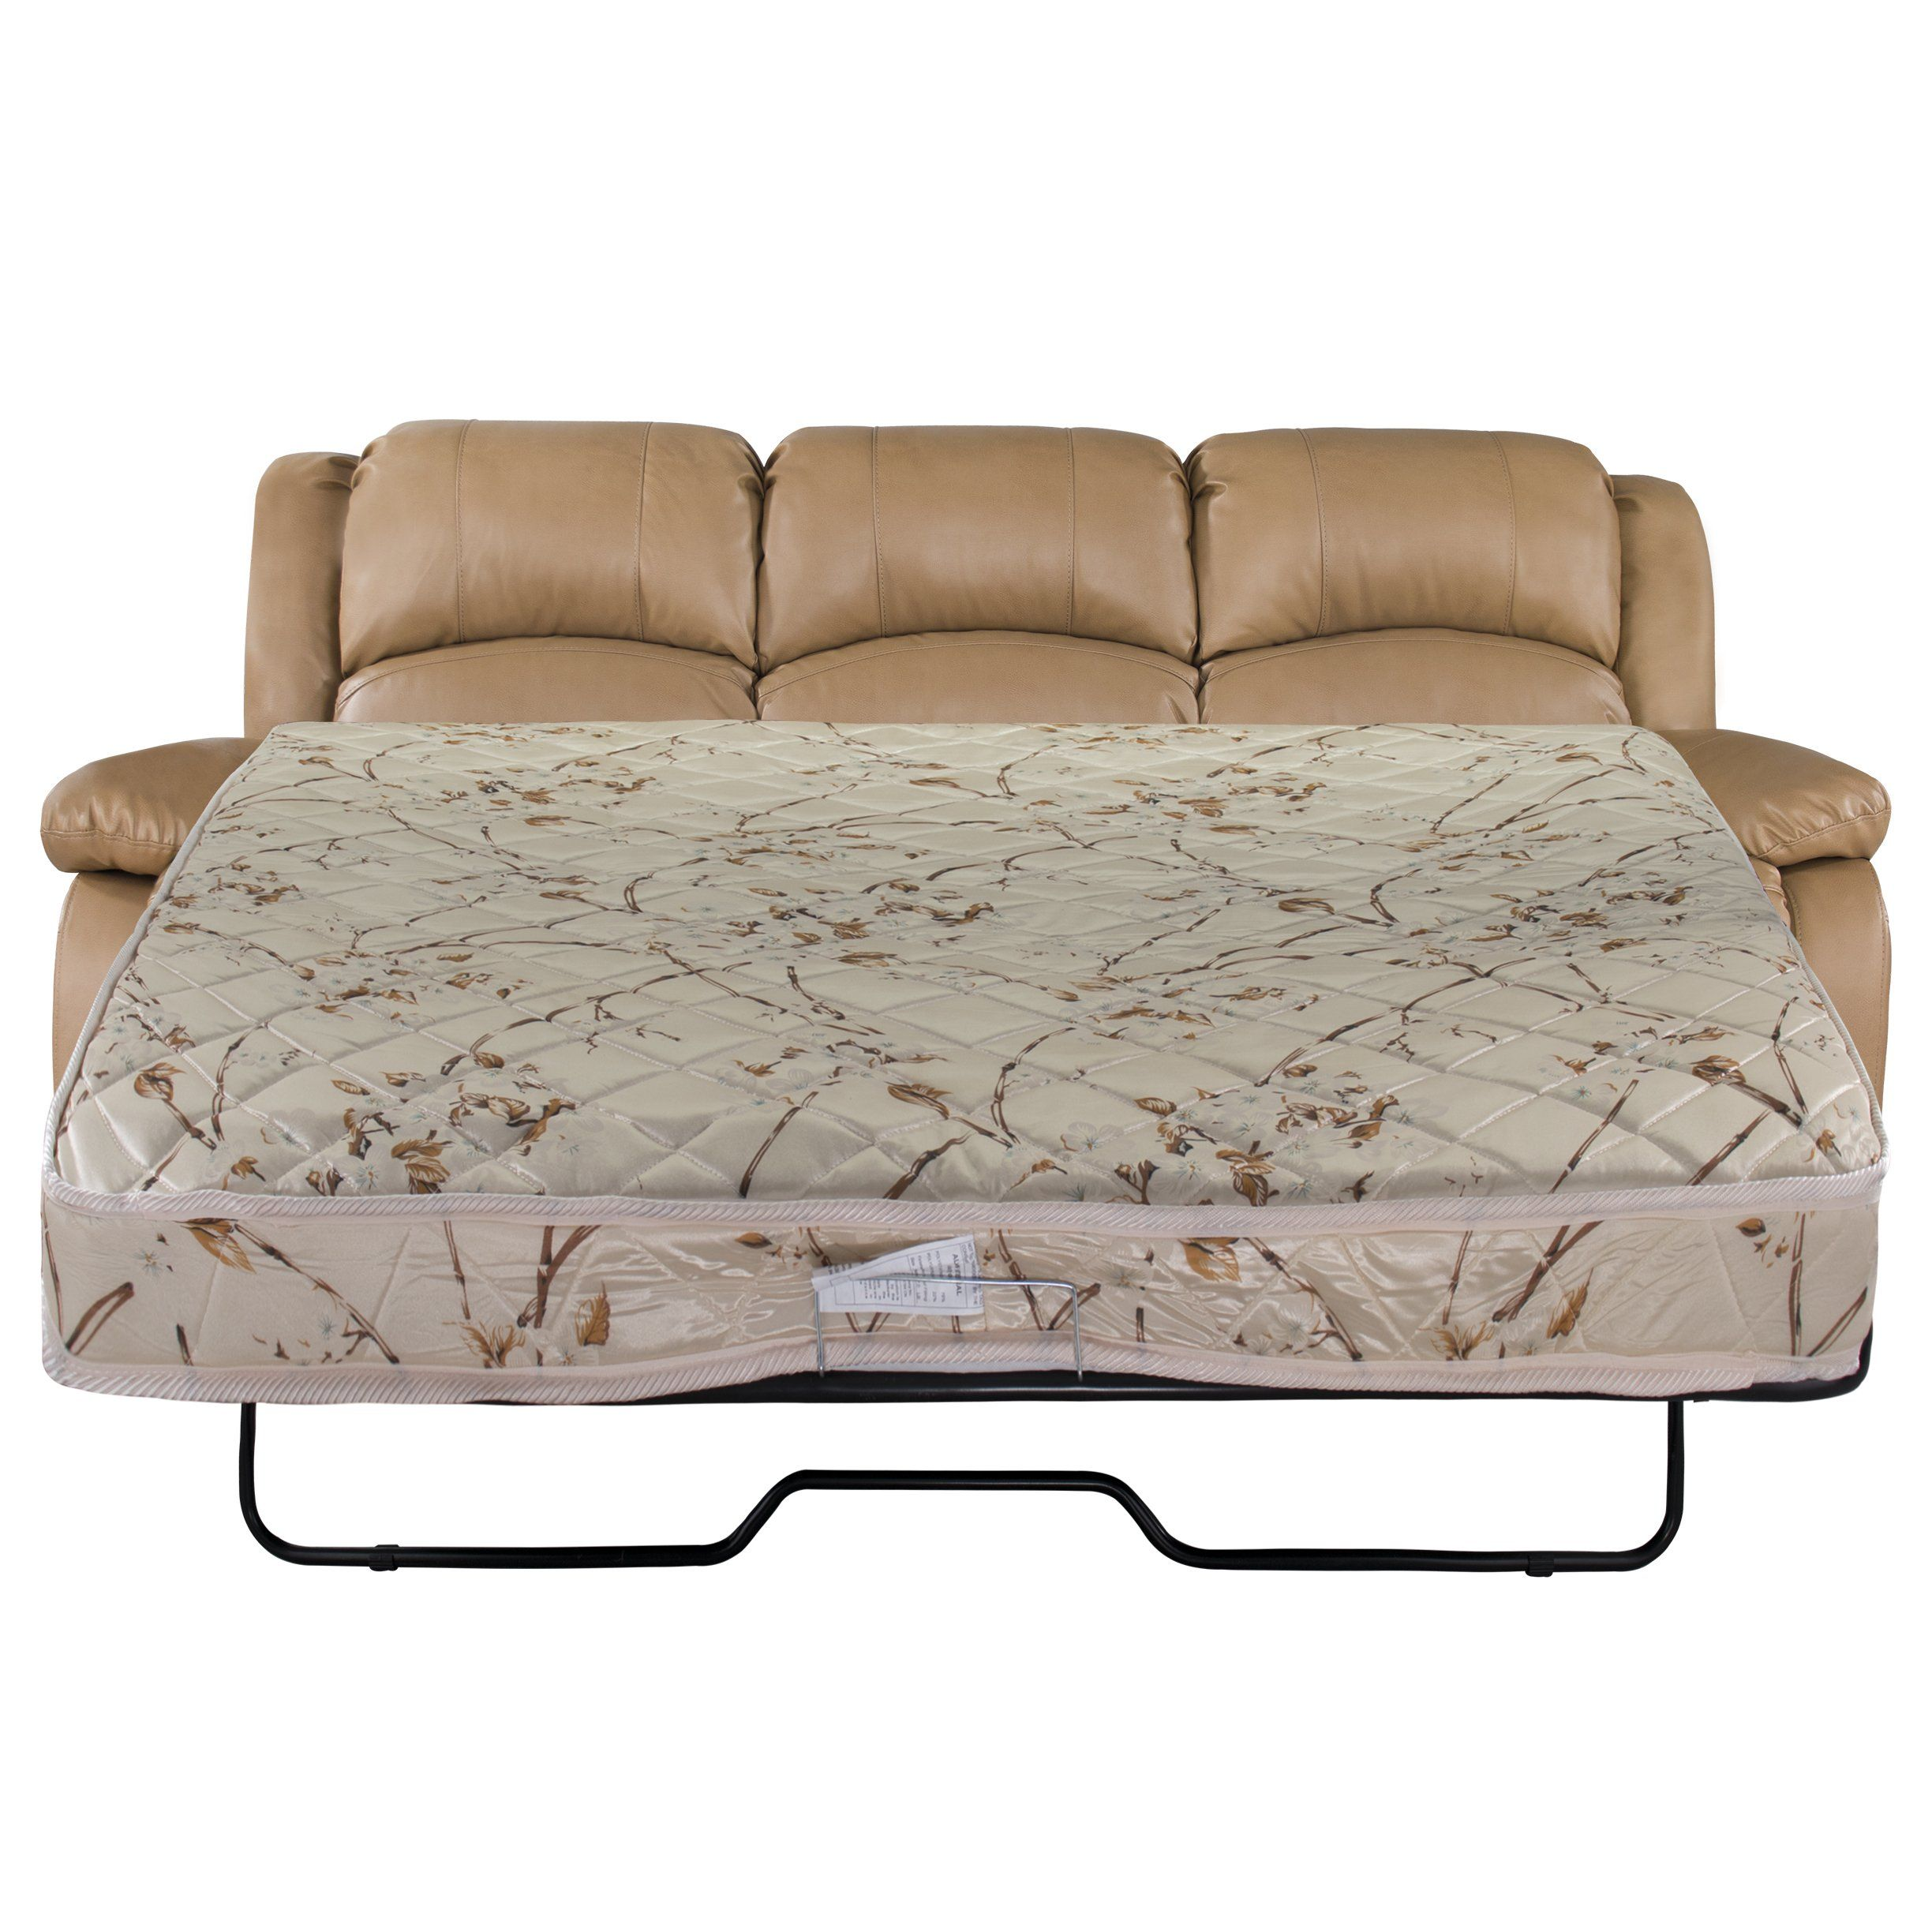 Recpro Charles Collection 80 Rv Hide A Bed Loveseat Sleeper Sofa Pull Out Couch